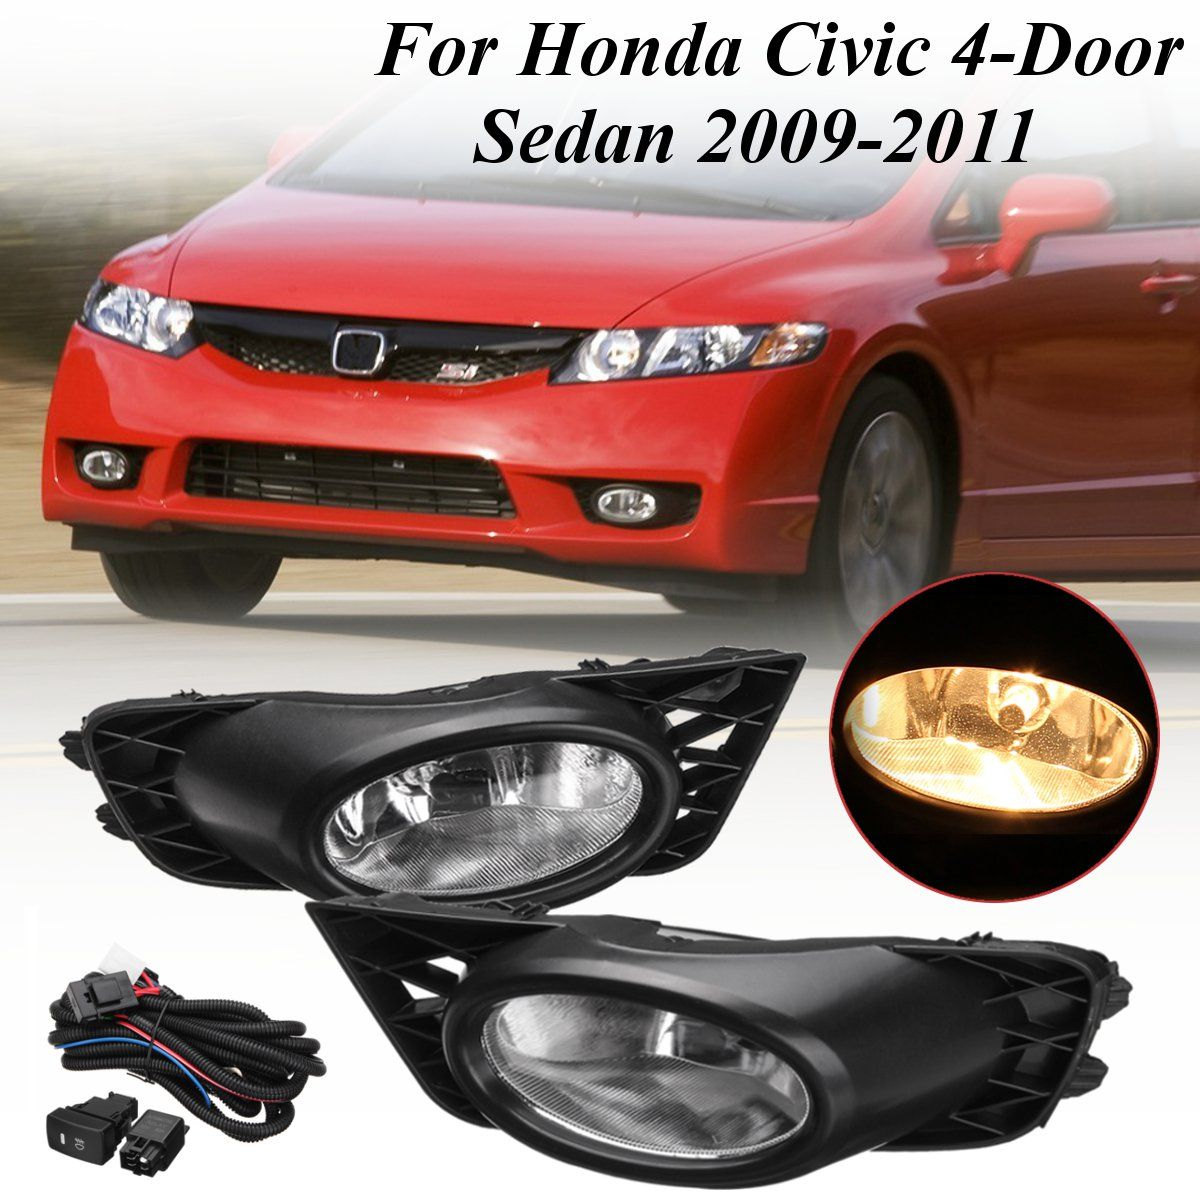 1 Pair H11 Bumper Grille Driving Led Fog Lights w/ Harness Replacements for Honda for Civic 4Door Sedan 2009 2010 2011 55WDC 12V